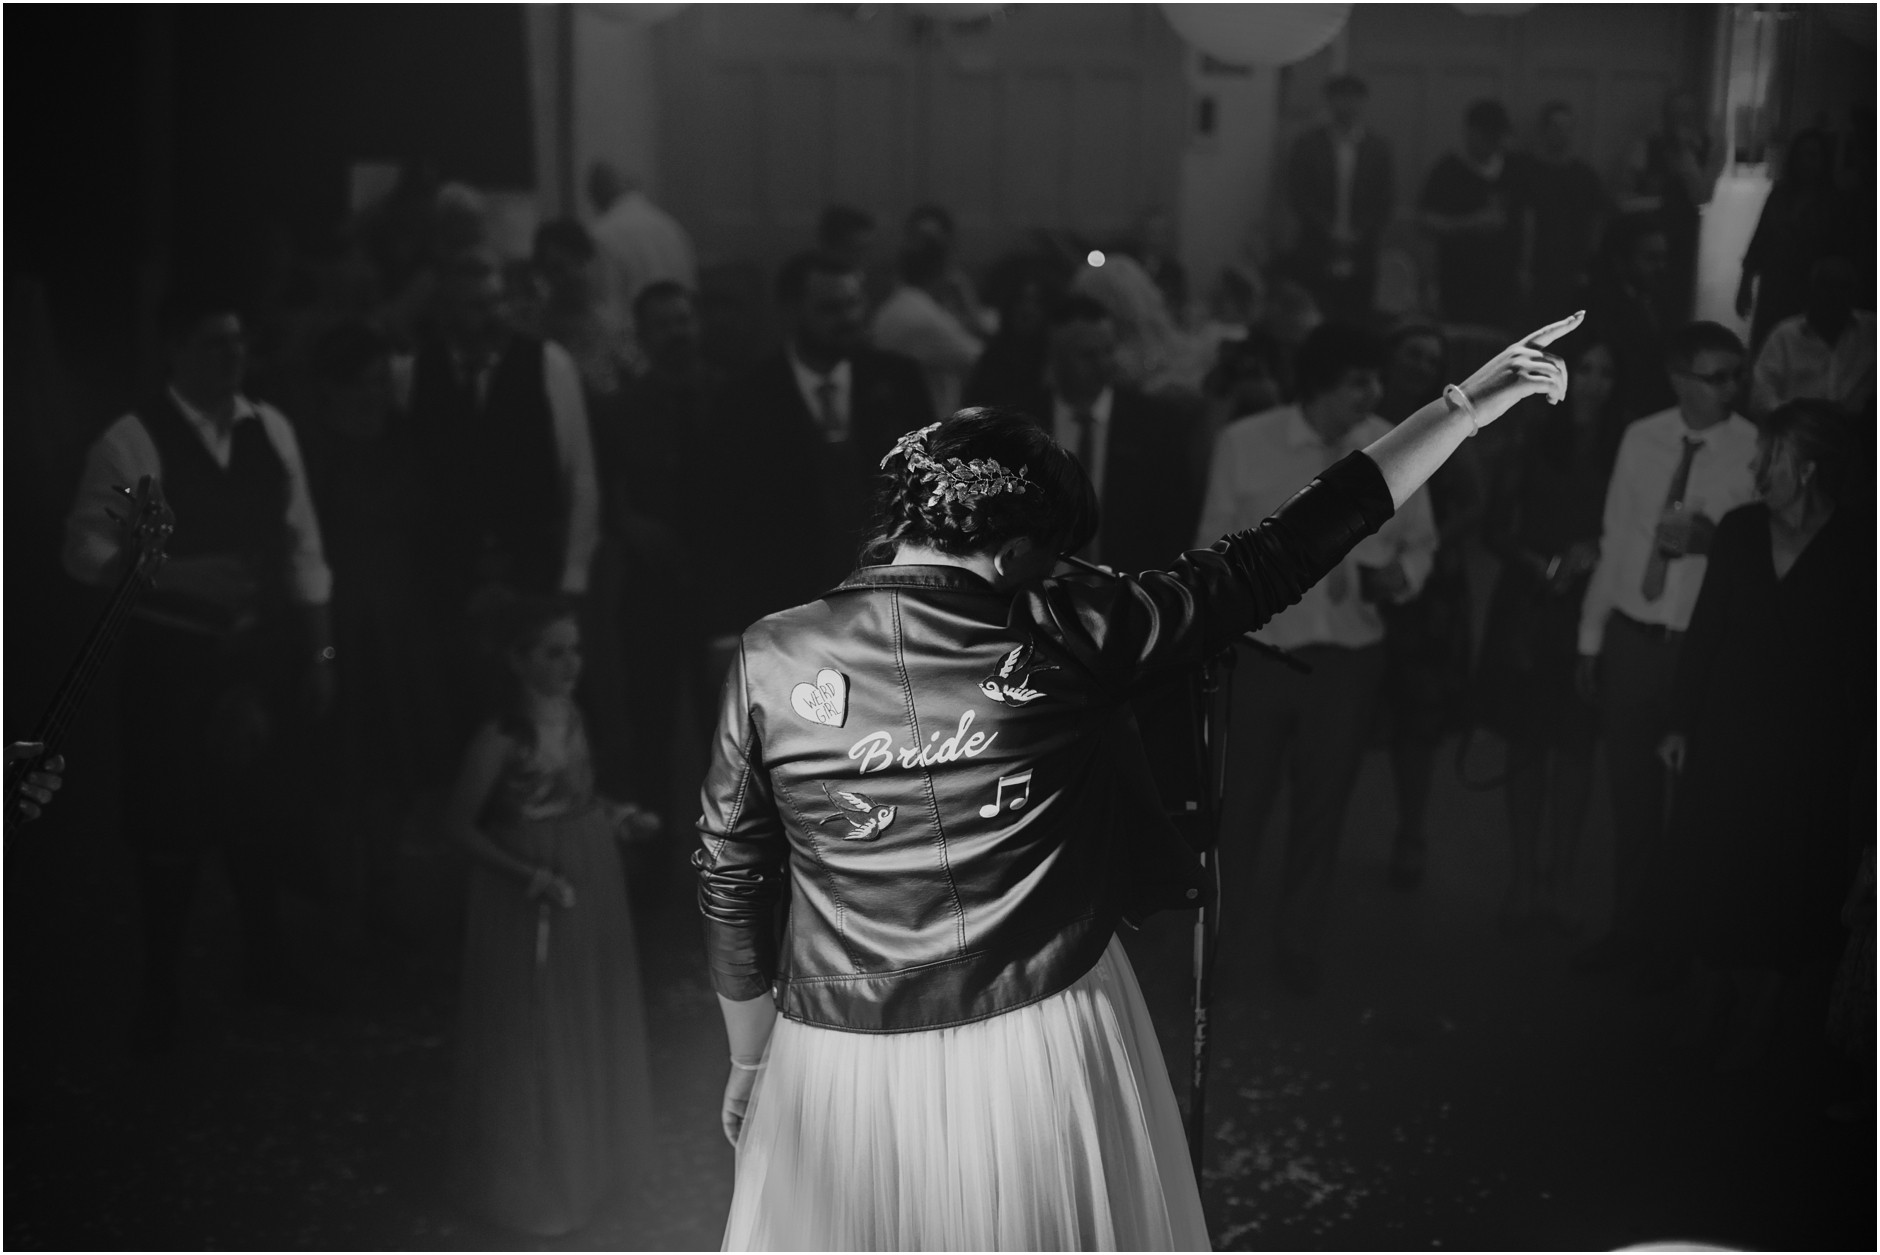 rock n roll birde on her wedding day playing with her band wearing a leather jacket over her wedding dress